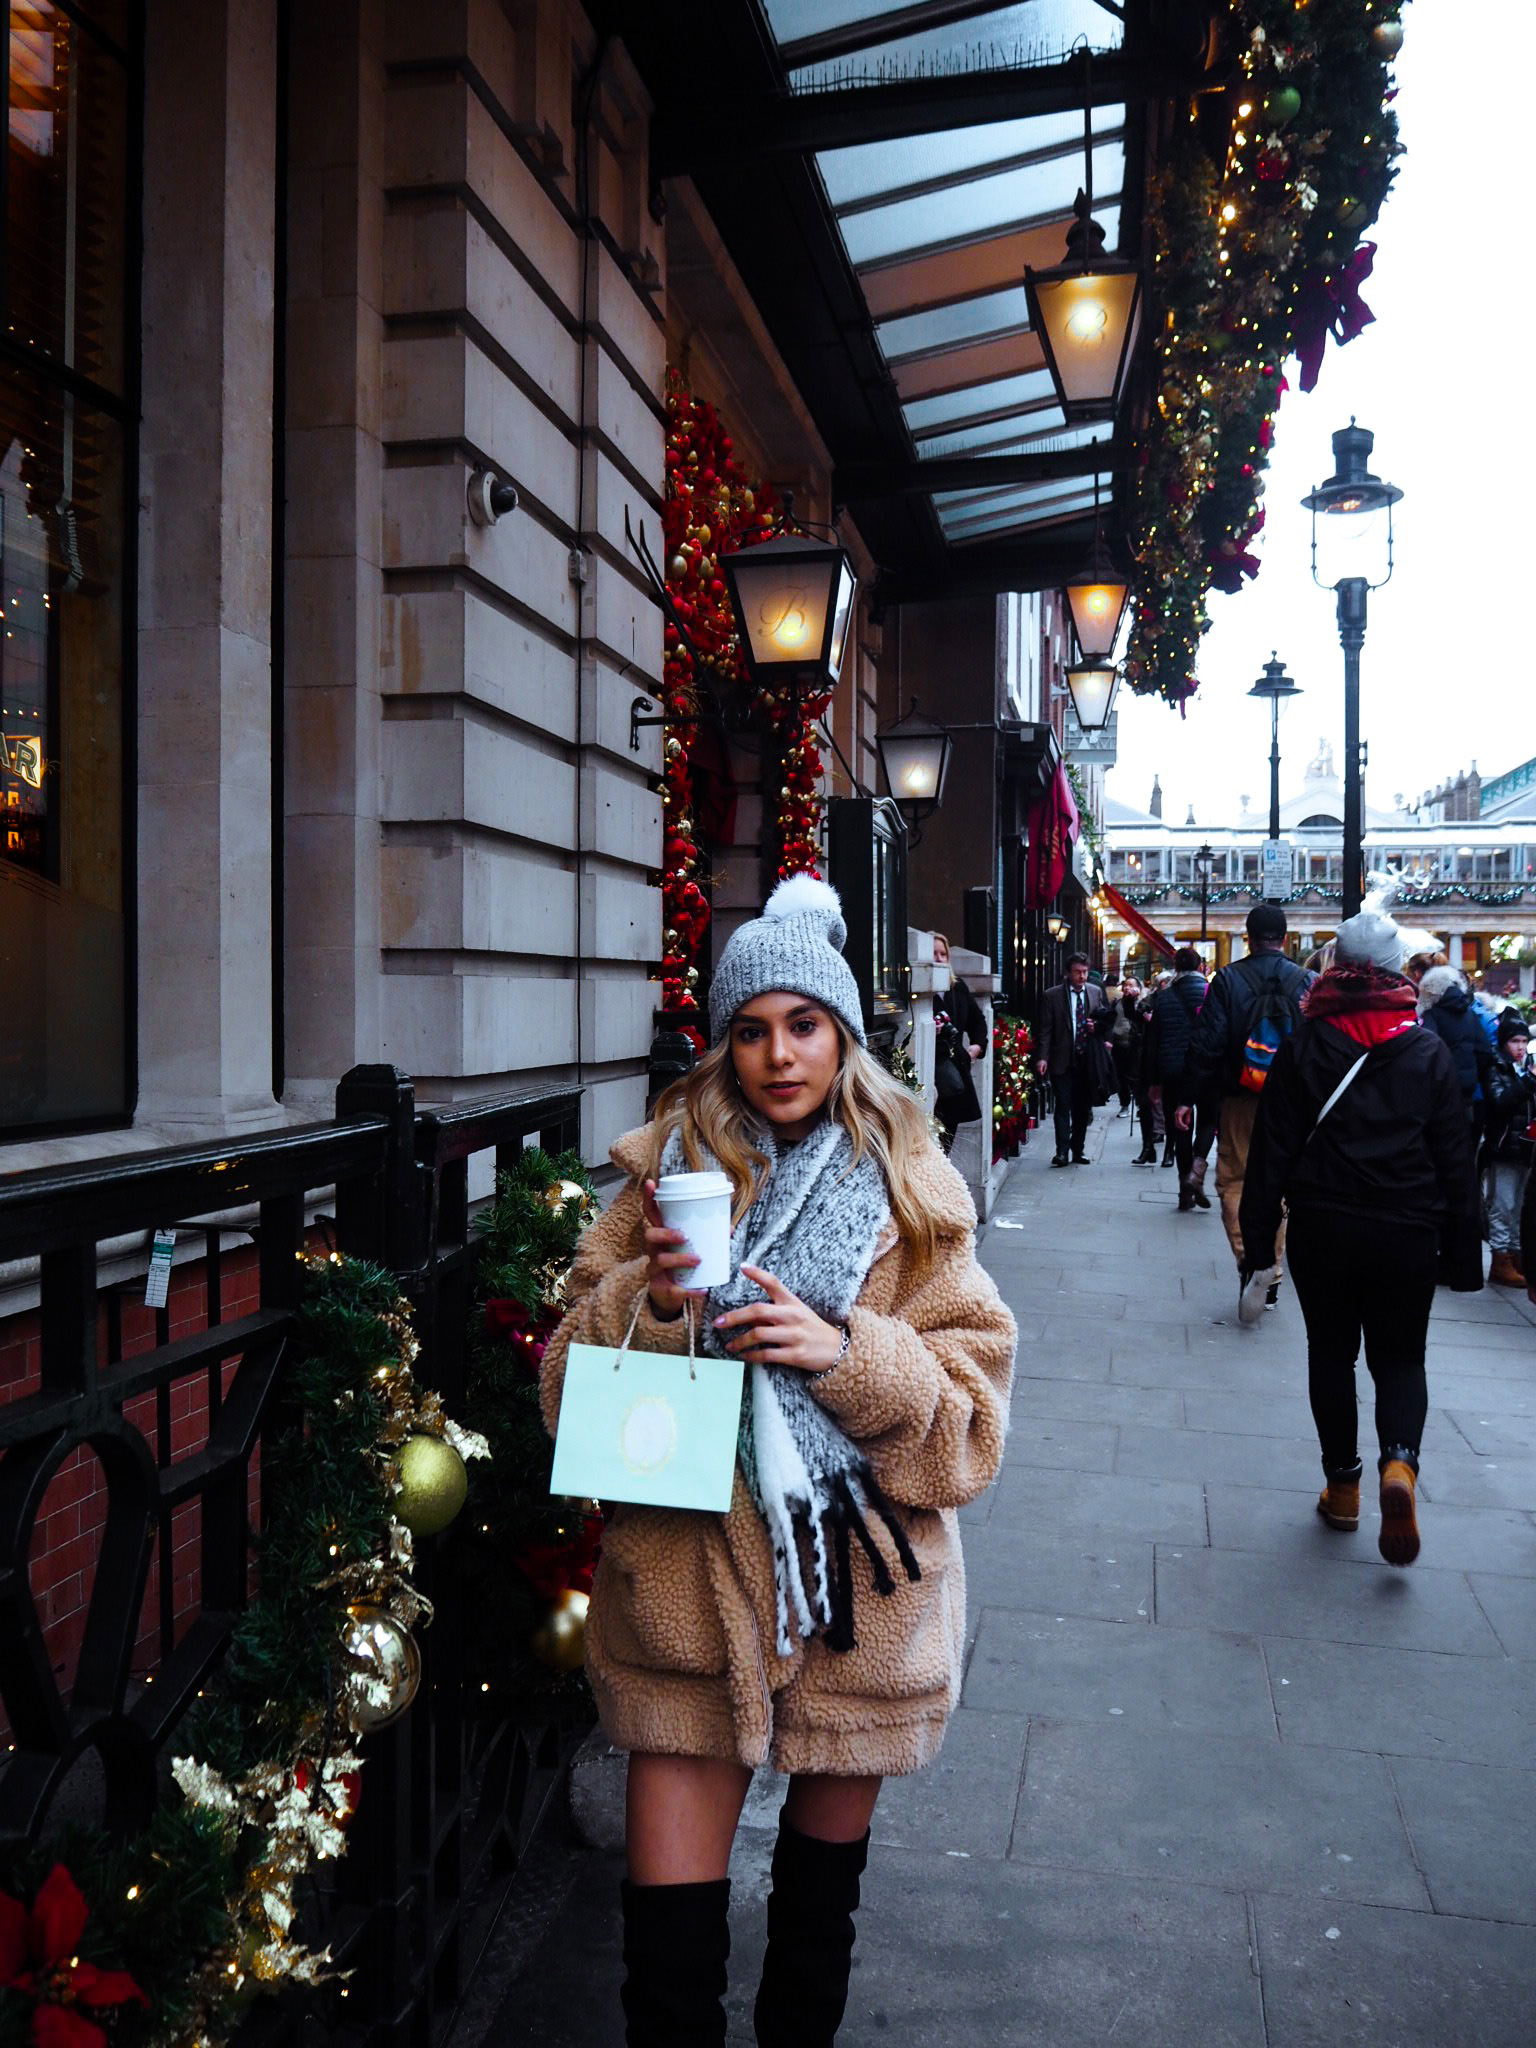 yasmin stefanie festive christmas covent garden i am gia pixie coat